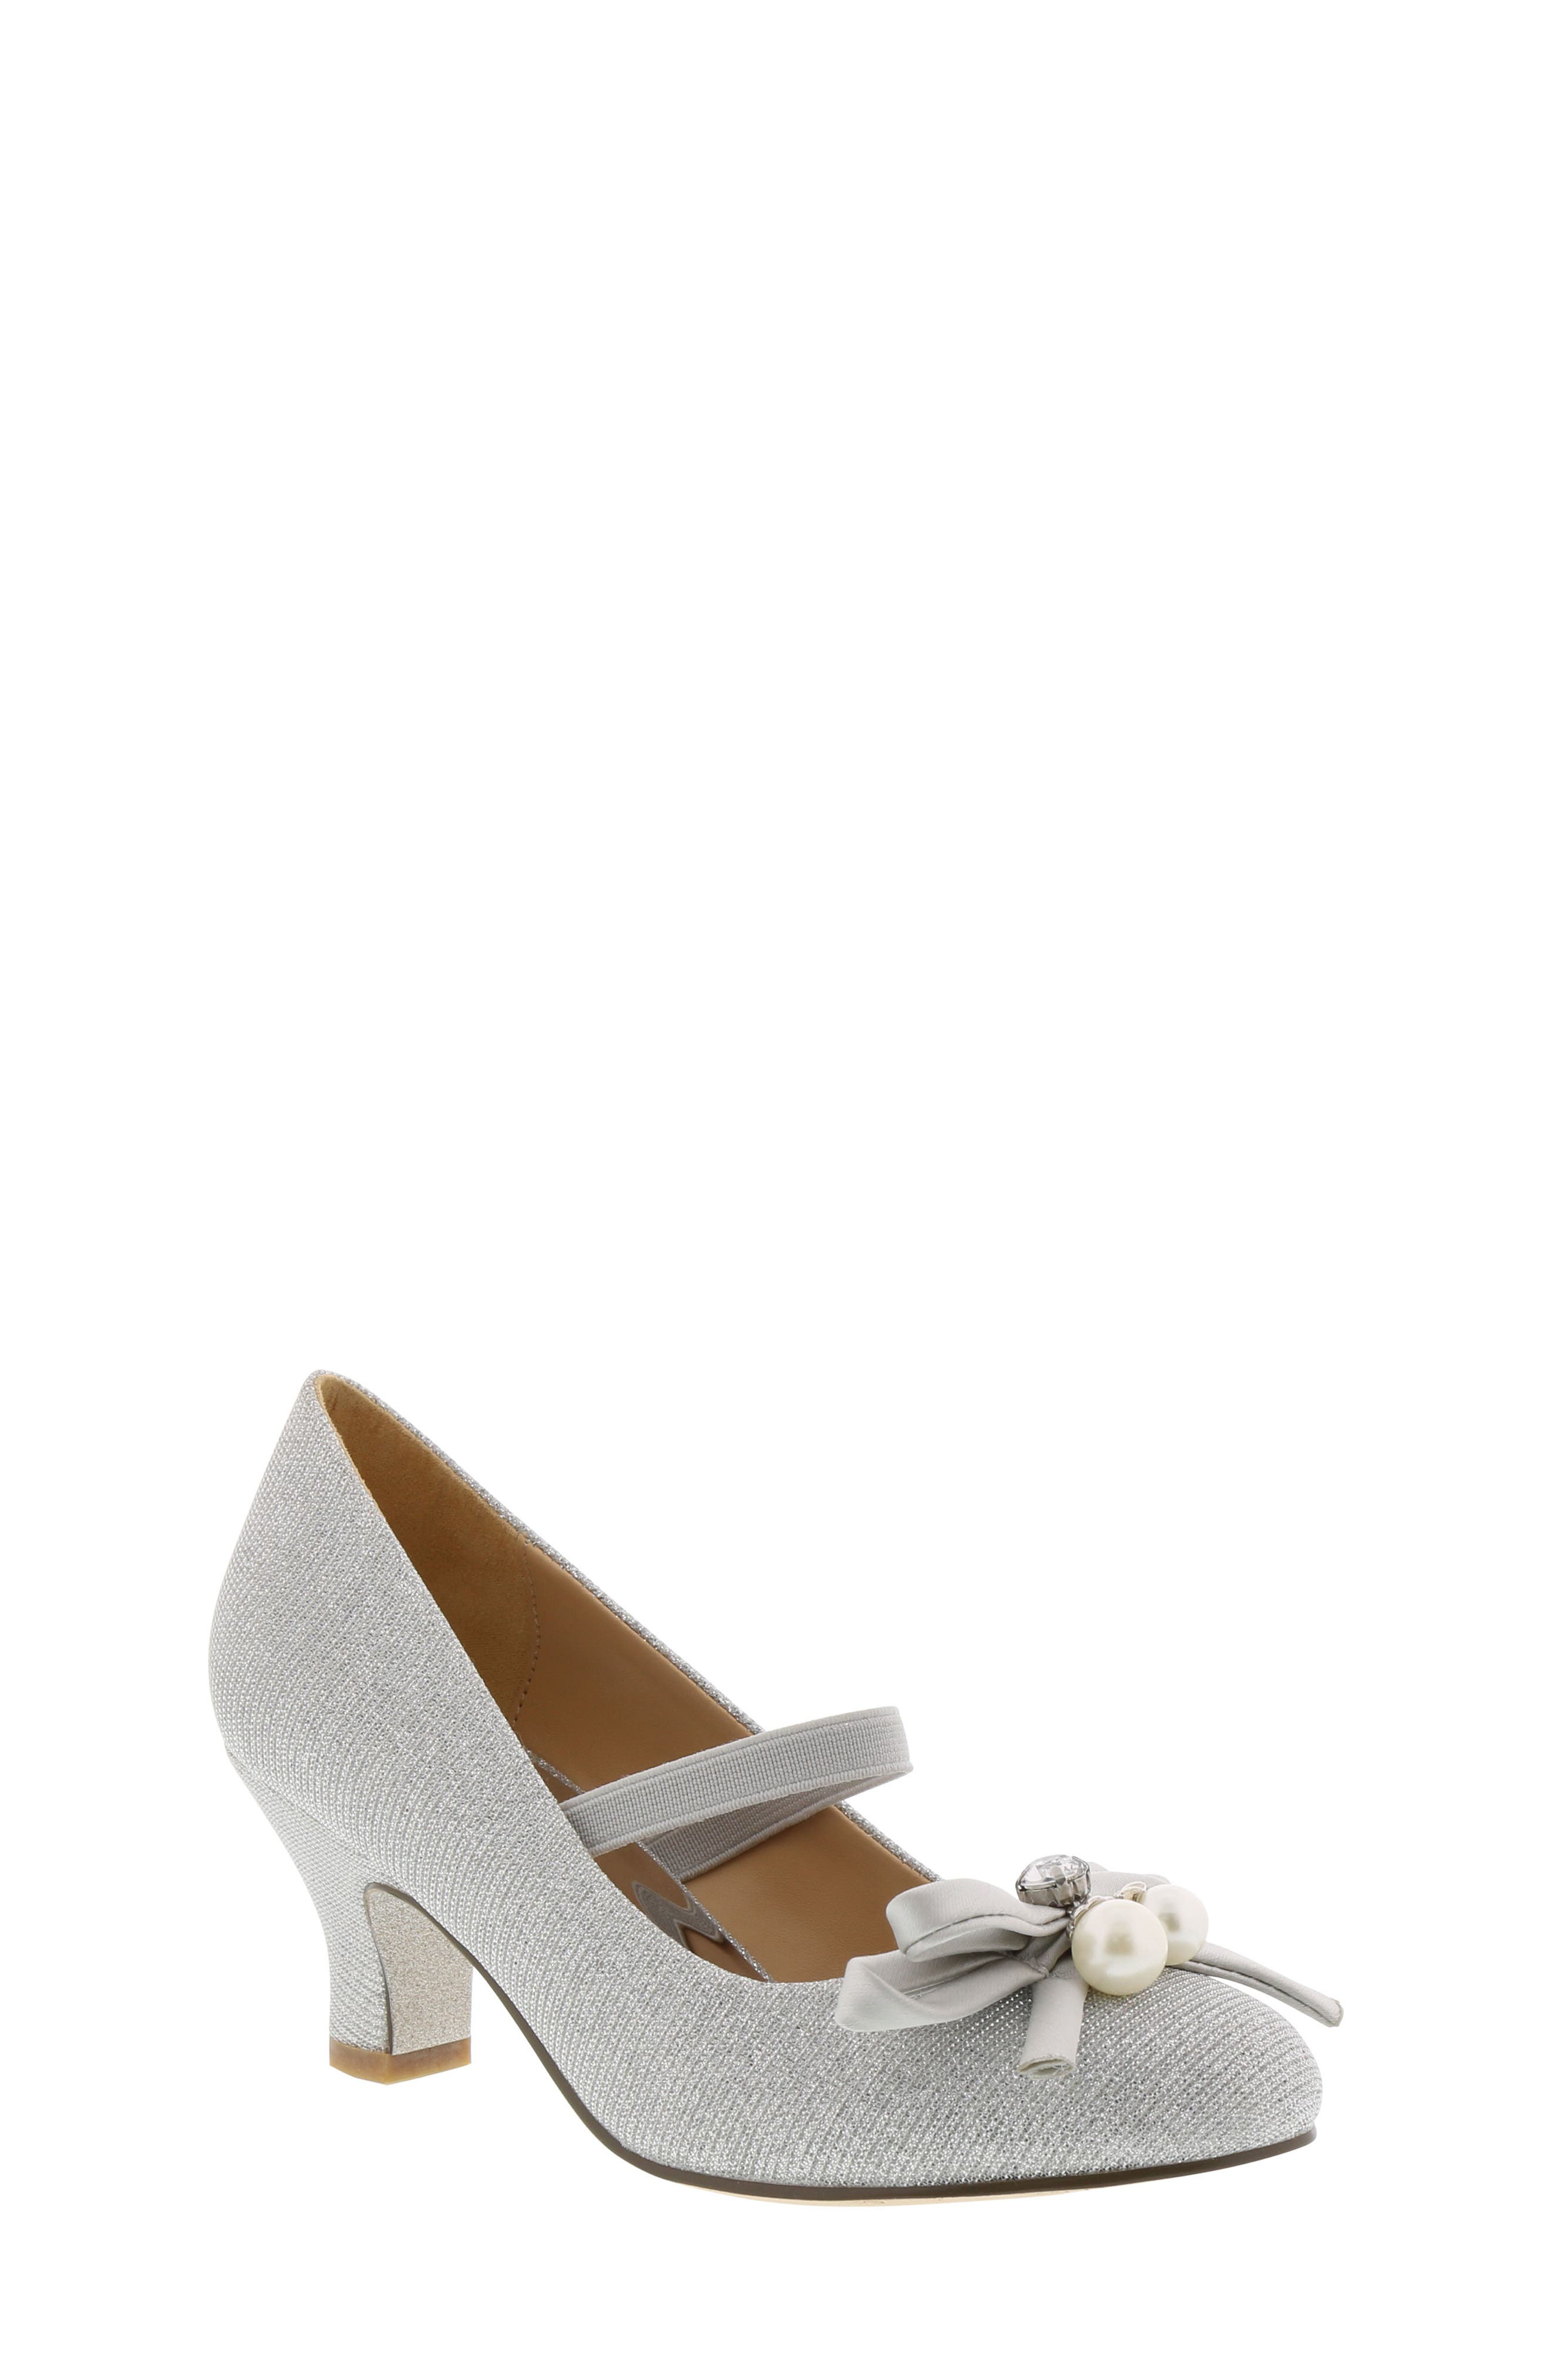 Milah Embellished Bow Pump,                         Main,                         color, Silver Multi